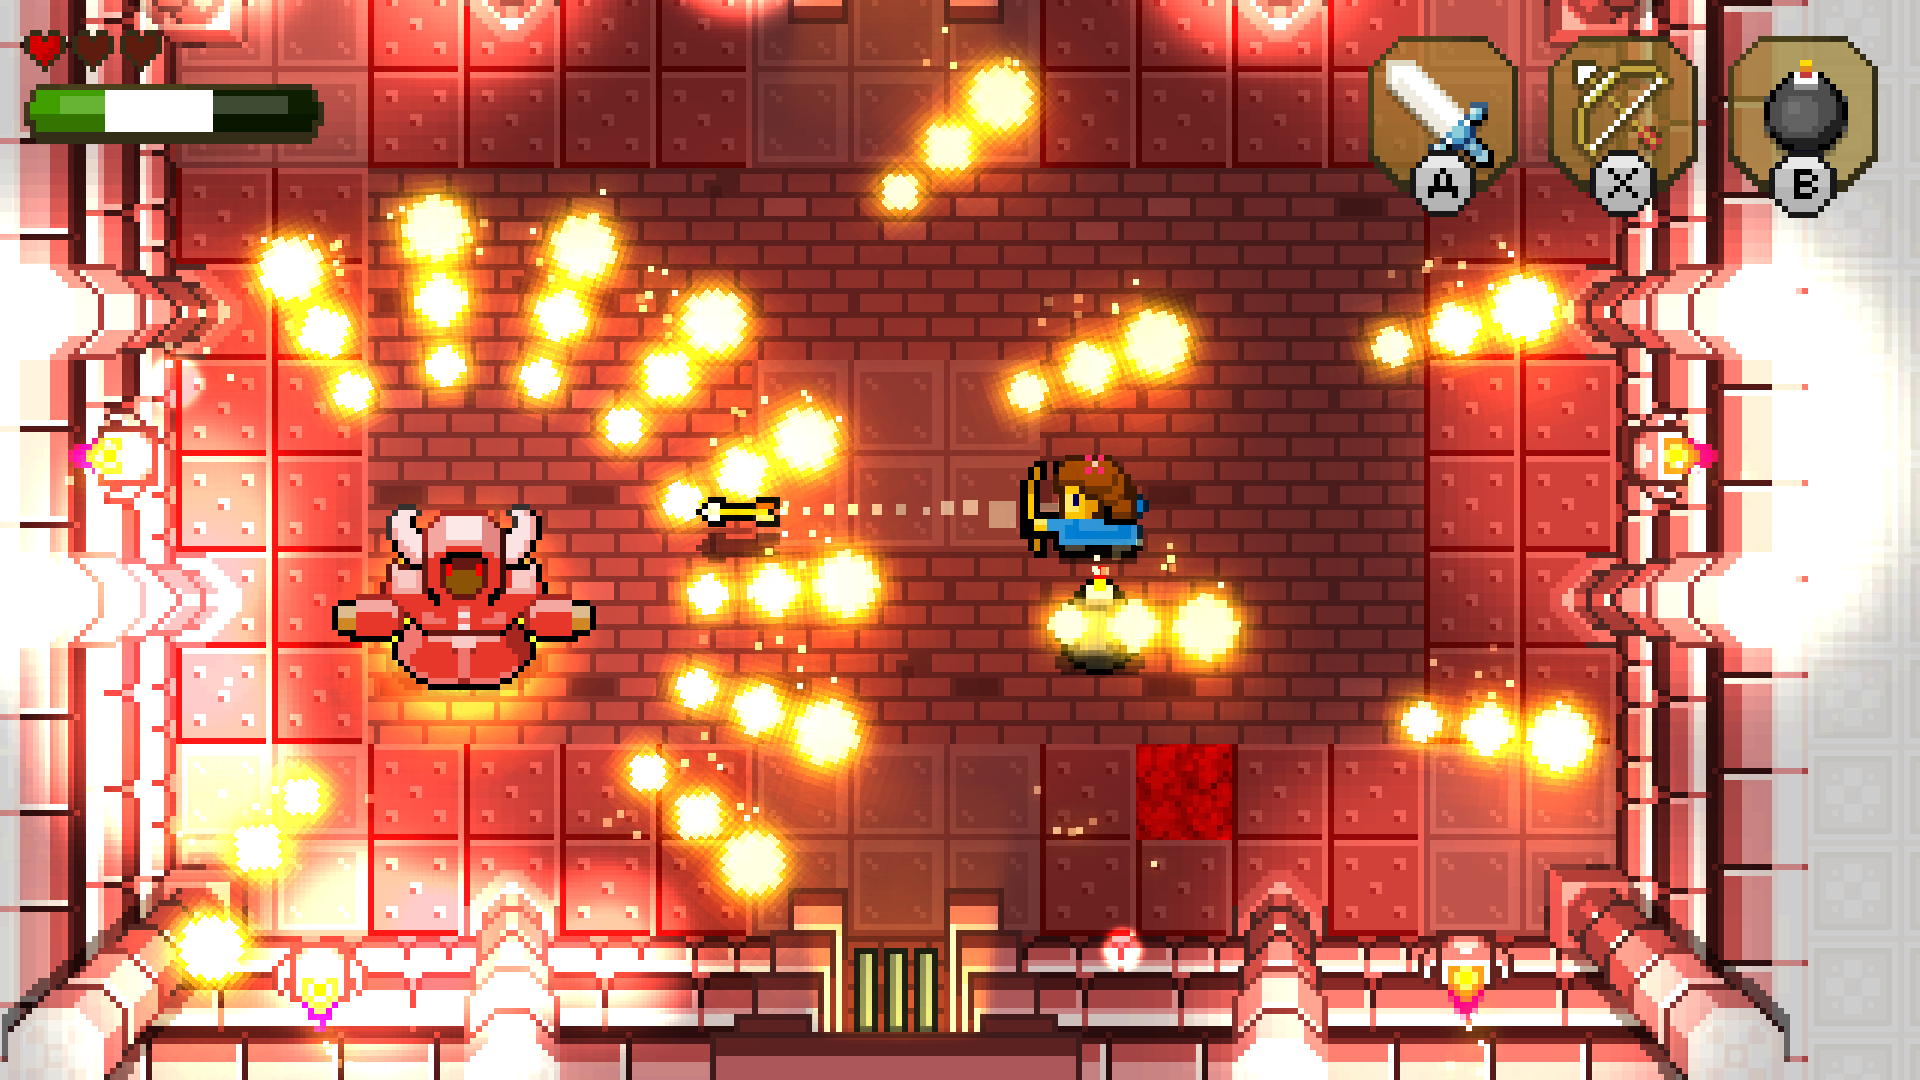 http://press.fdg-entertainment.com/blossom_tales/images/BlossomTales_SwitchScreenshots3.png